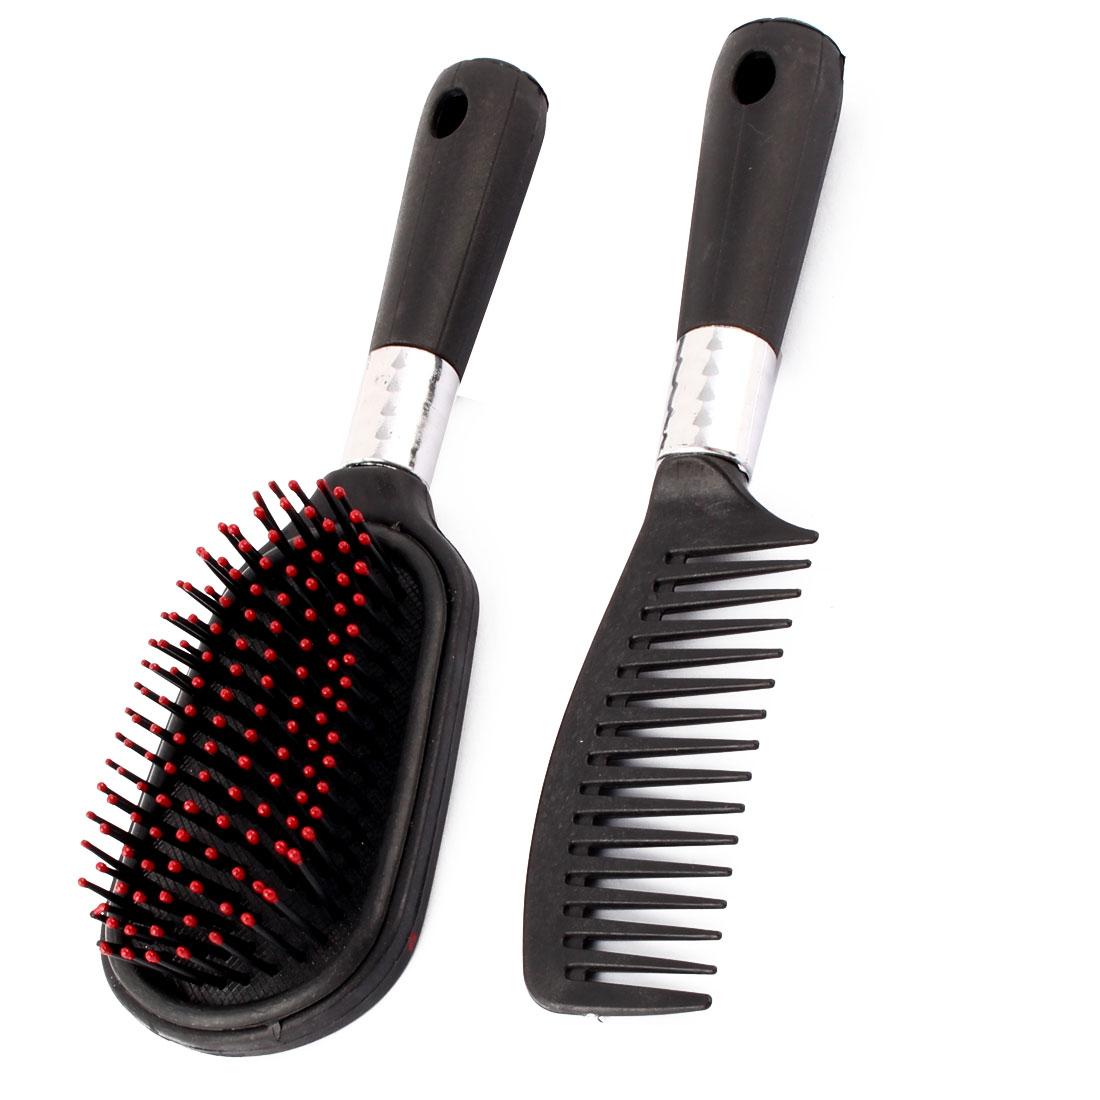 Home Travel Plastic Head Scalp Massage Anti Static Brush Hair Comb Mirror 2 in 1